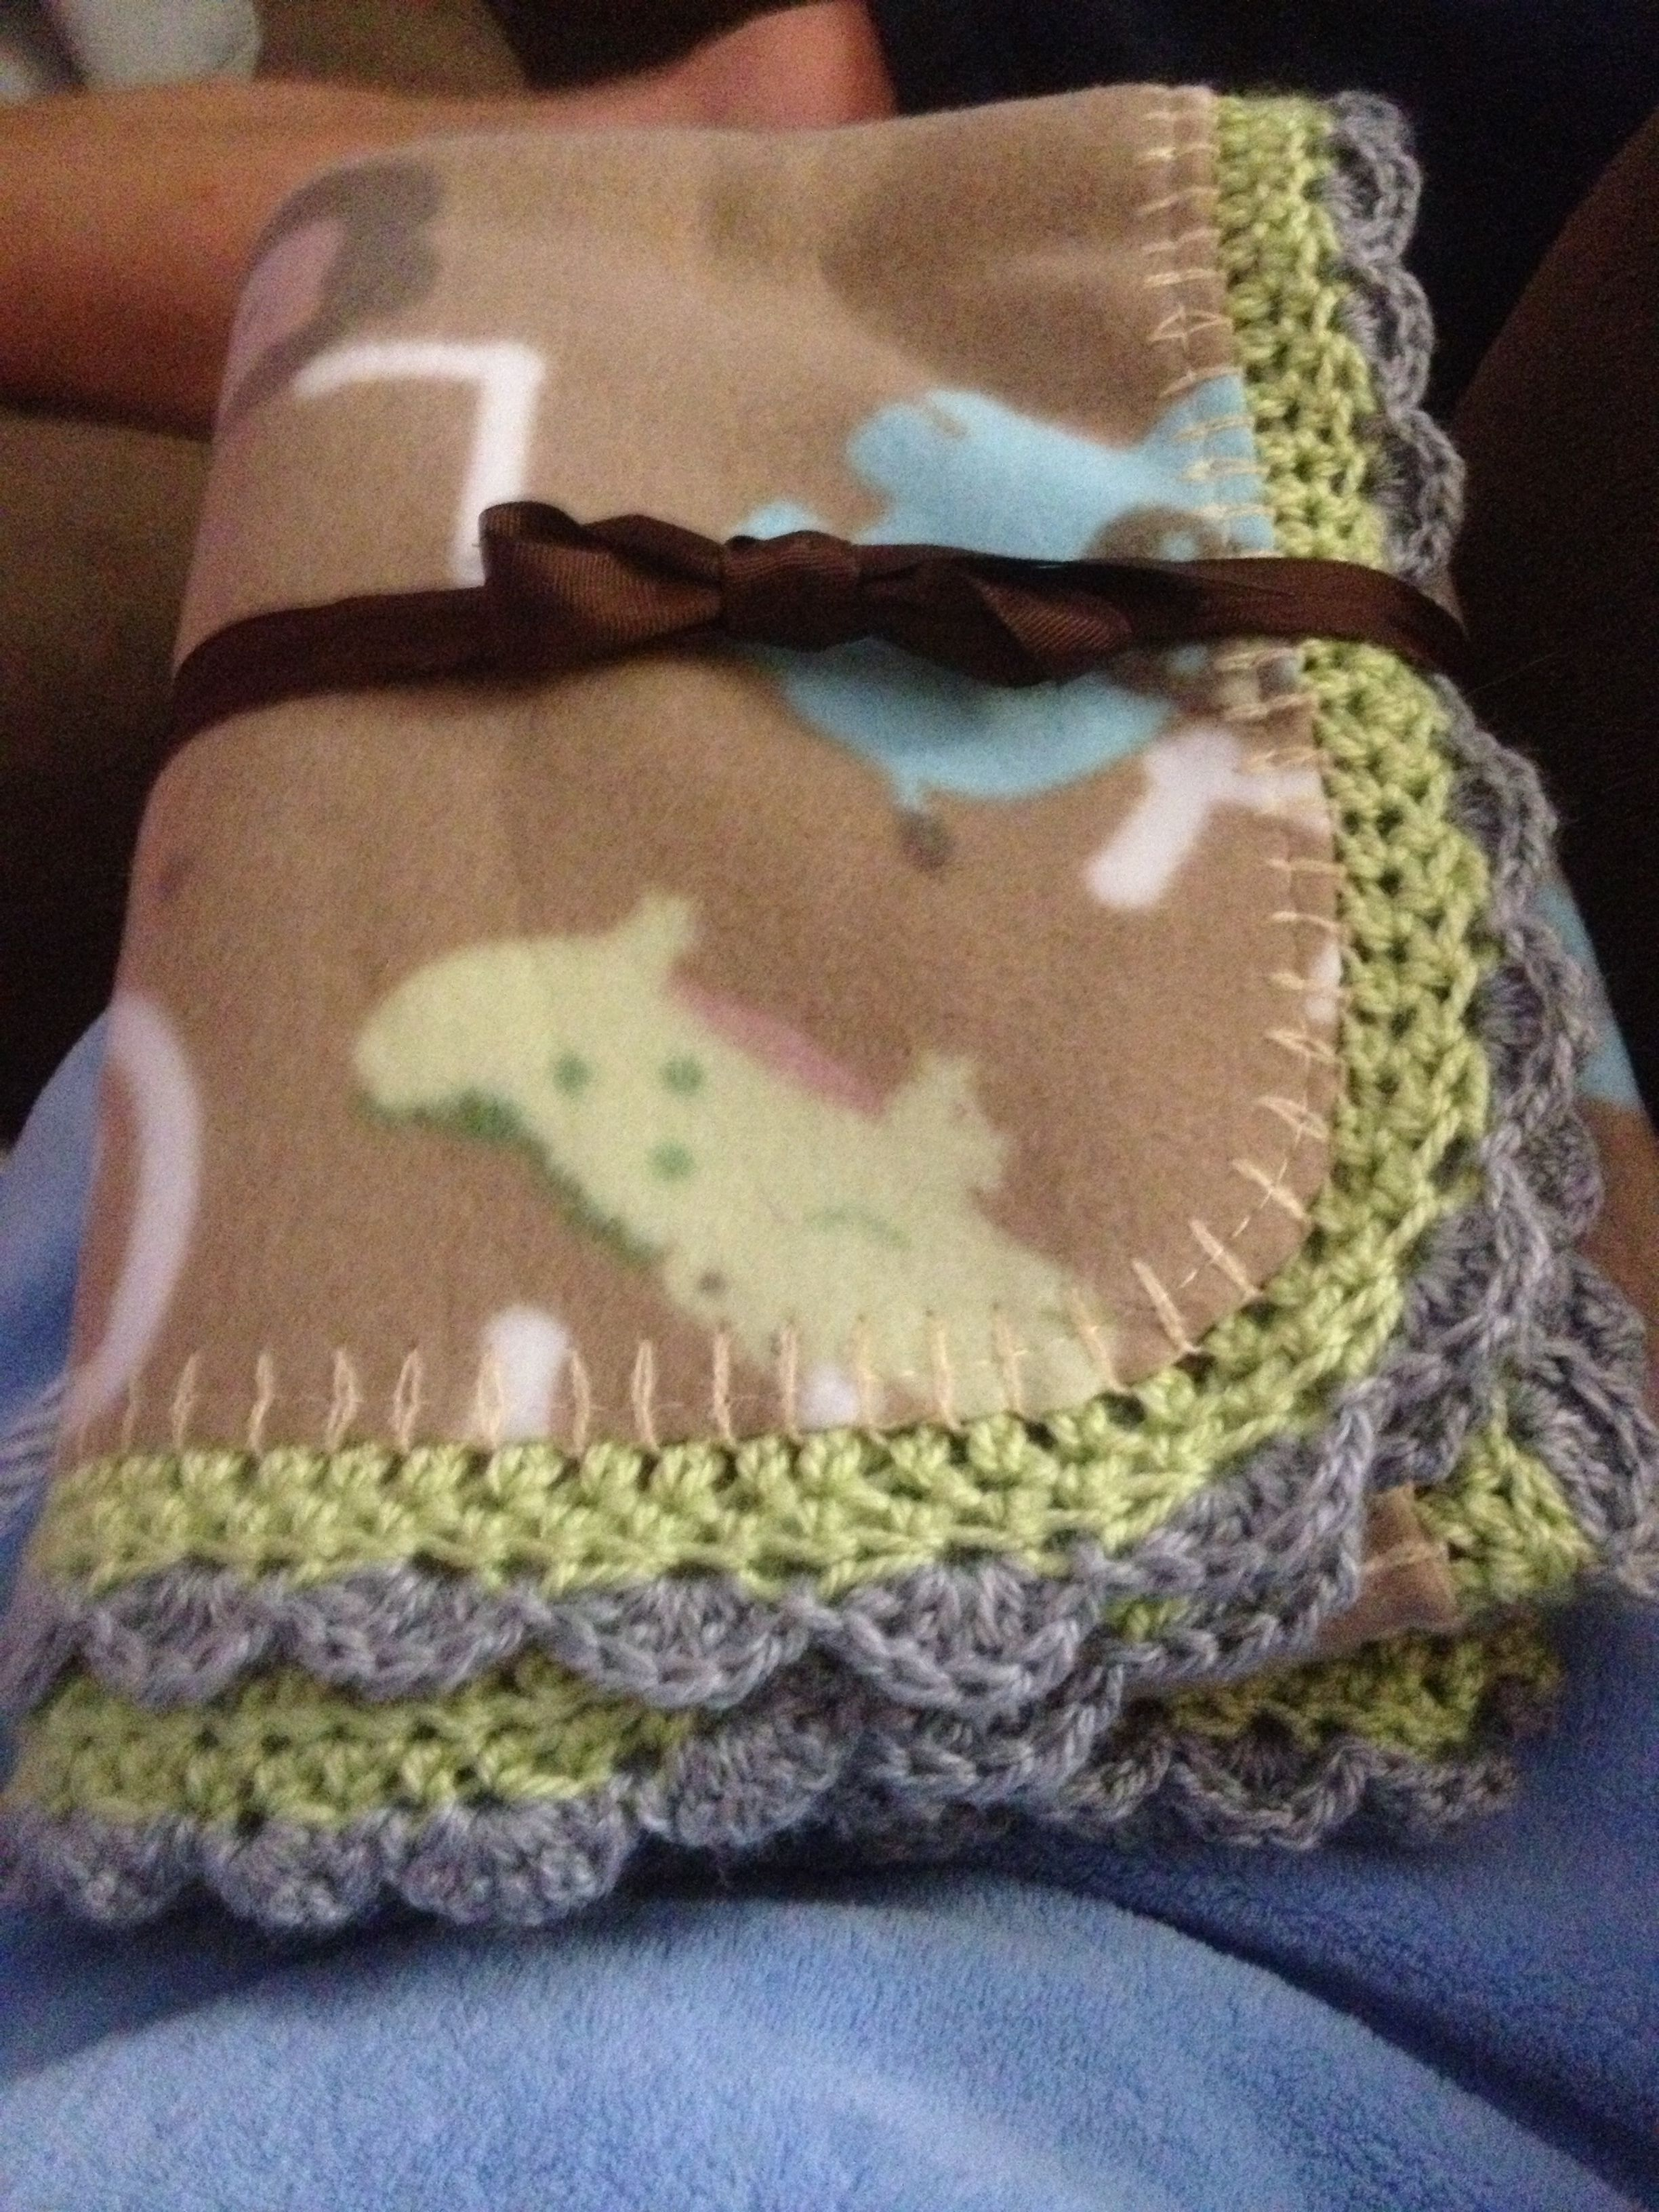 Fleece blanket with crochet edging Craft Ideas Pinterest